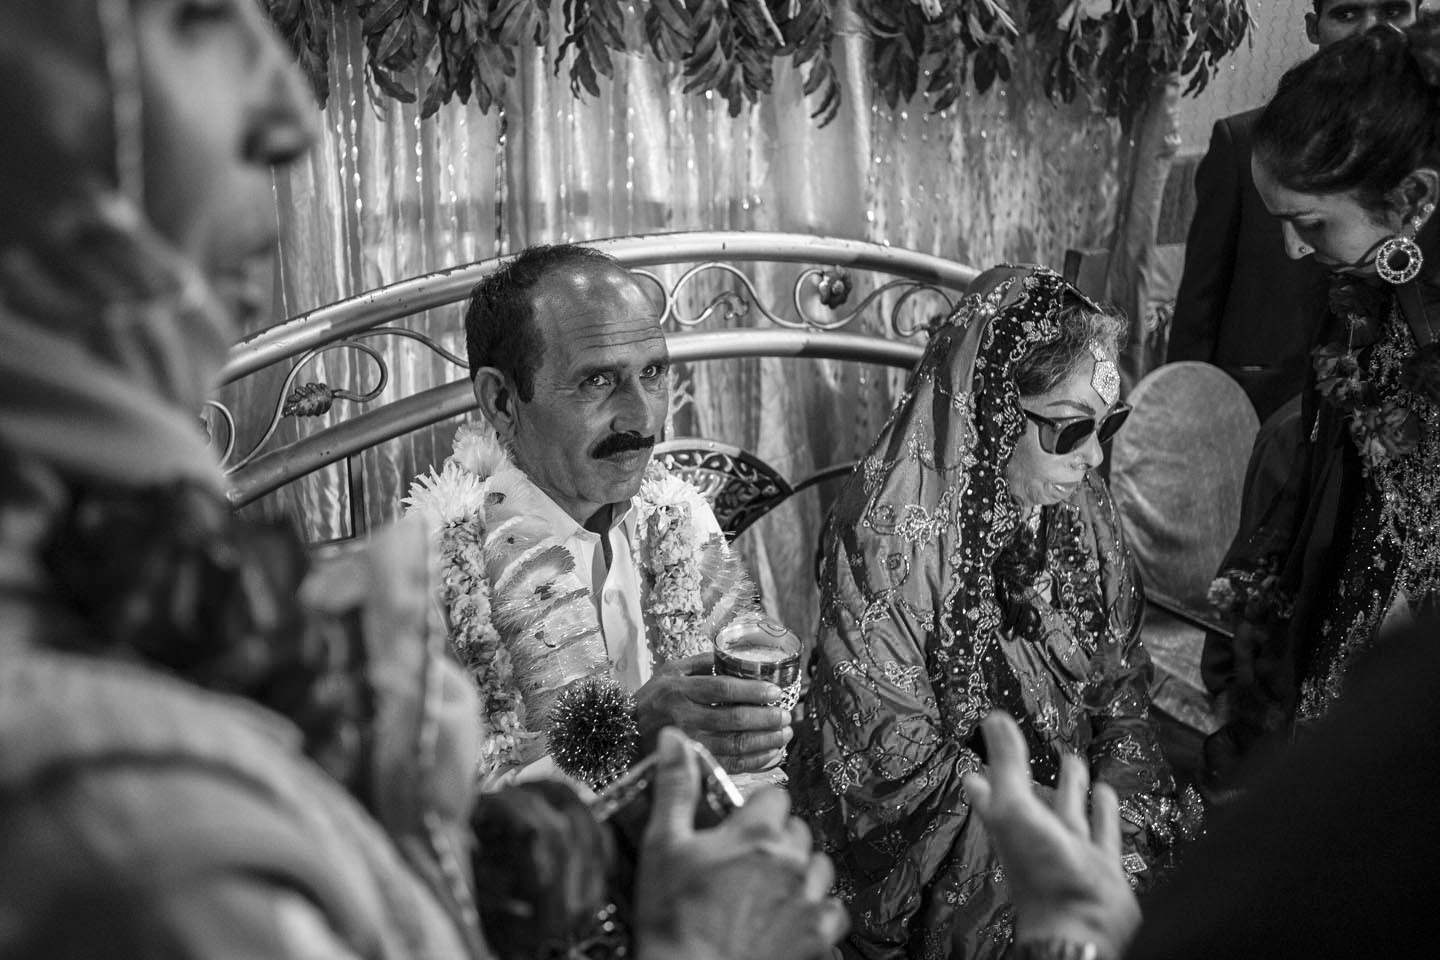 Arshad Ali (Left) sips milk as part of a wedding tradition at the ceremony on Jan. 7, 2016 in Lahore, Pakistan.